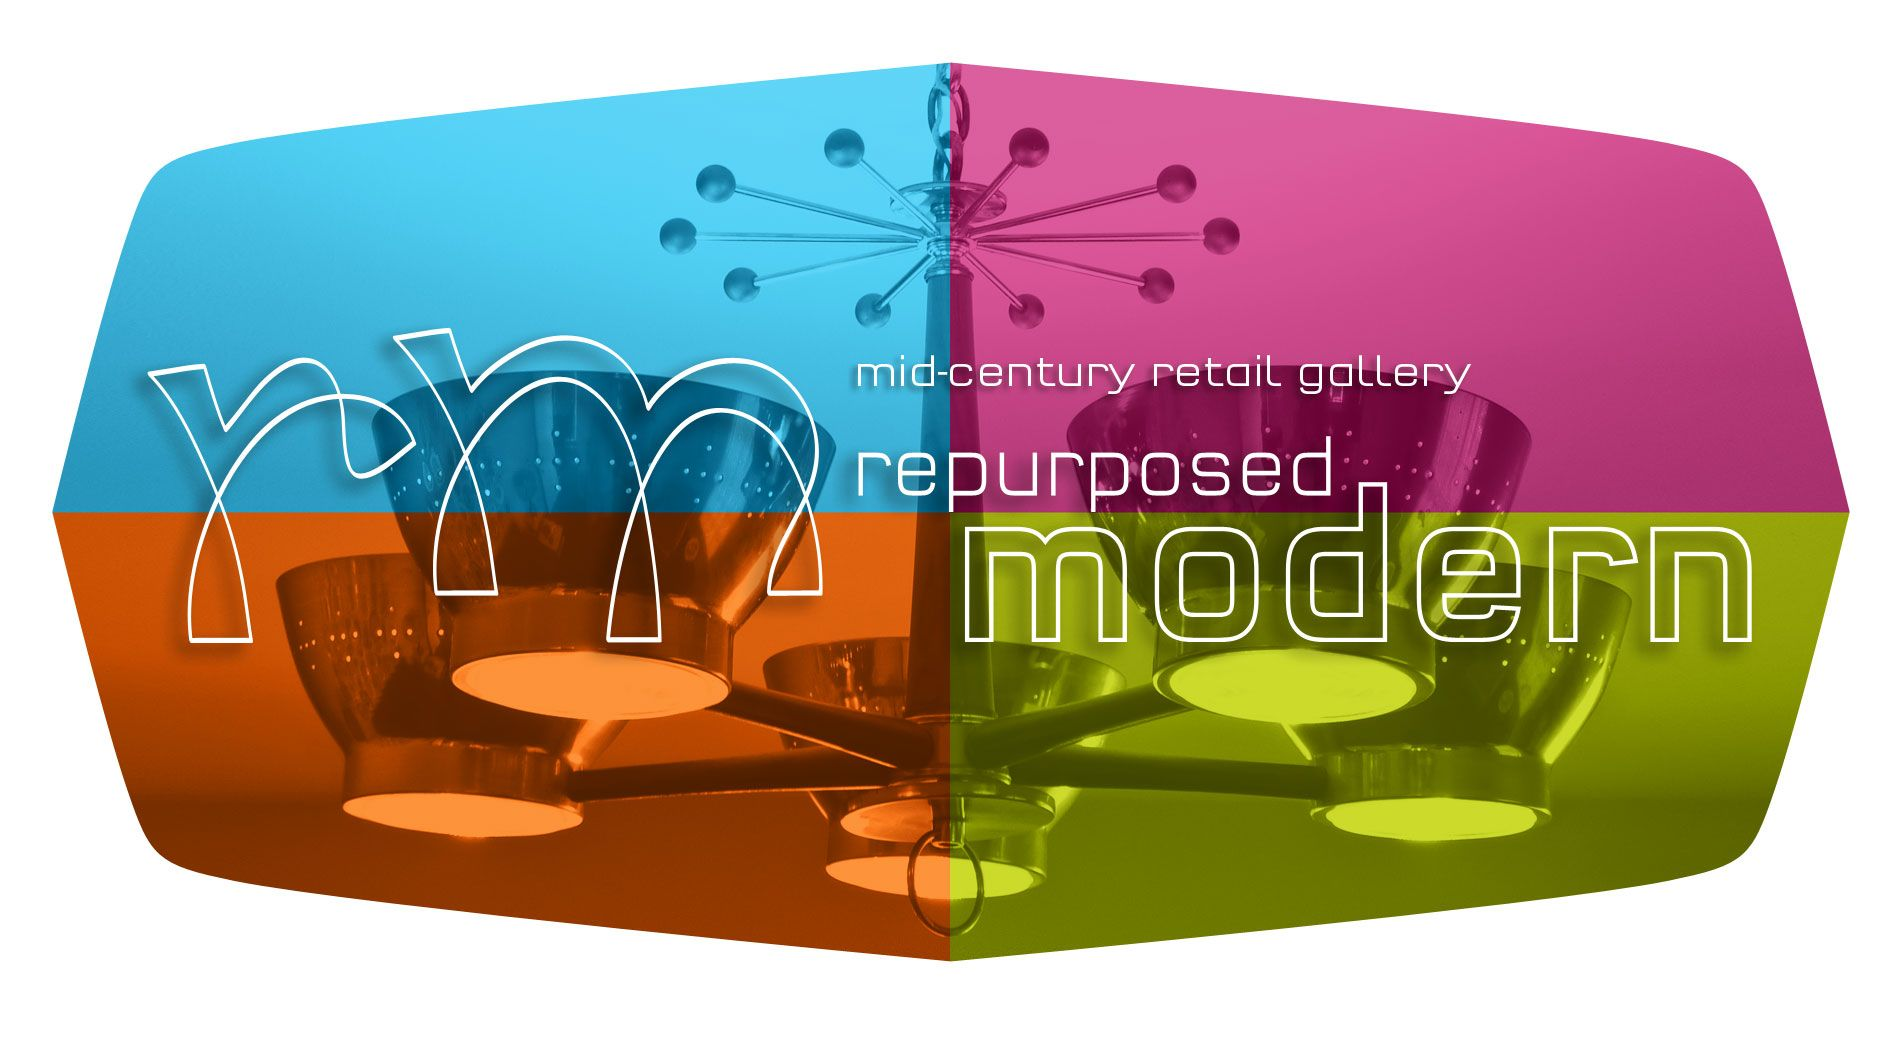 mid century modern vintage store and